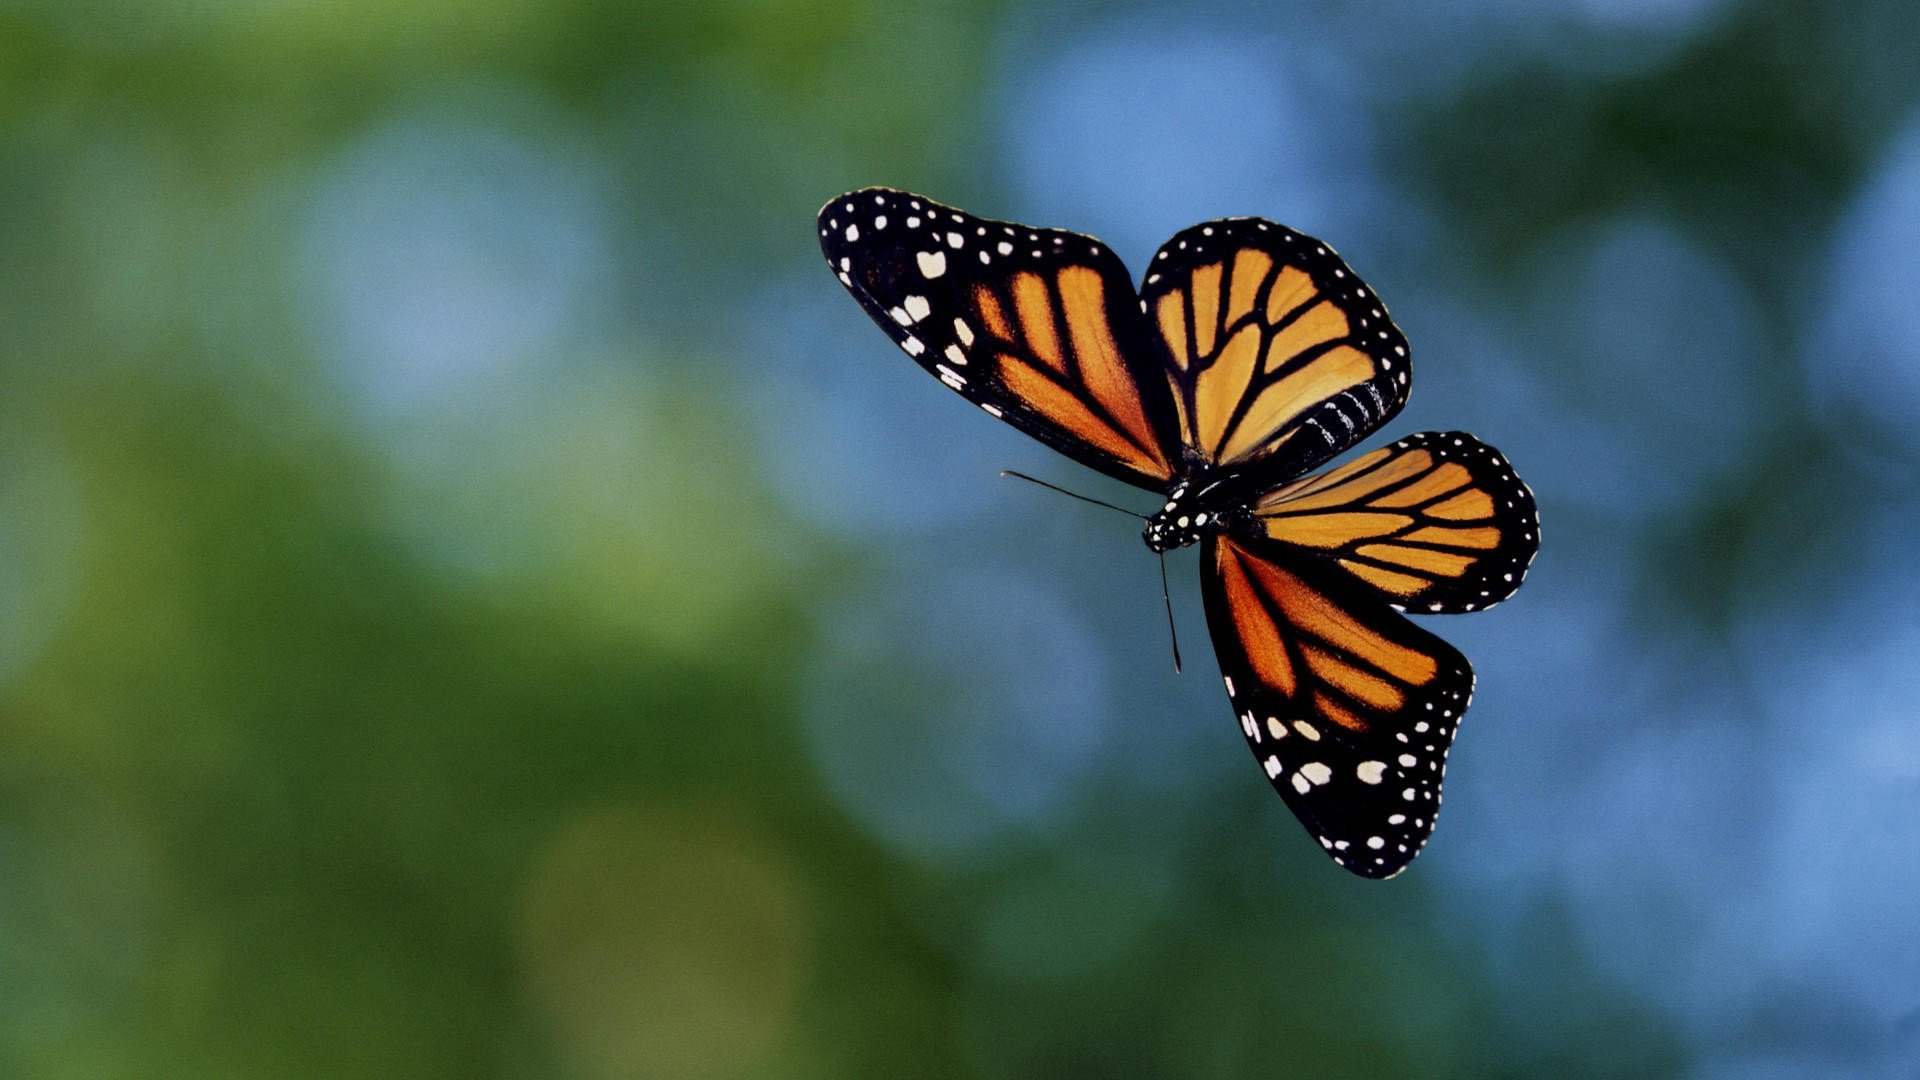 Awesome Butterfly free wallpaper ID:168100 for full hd desktop